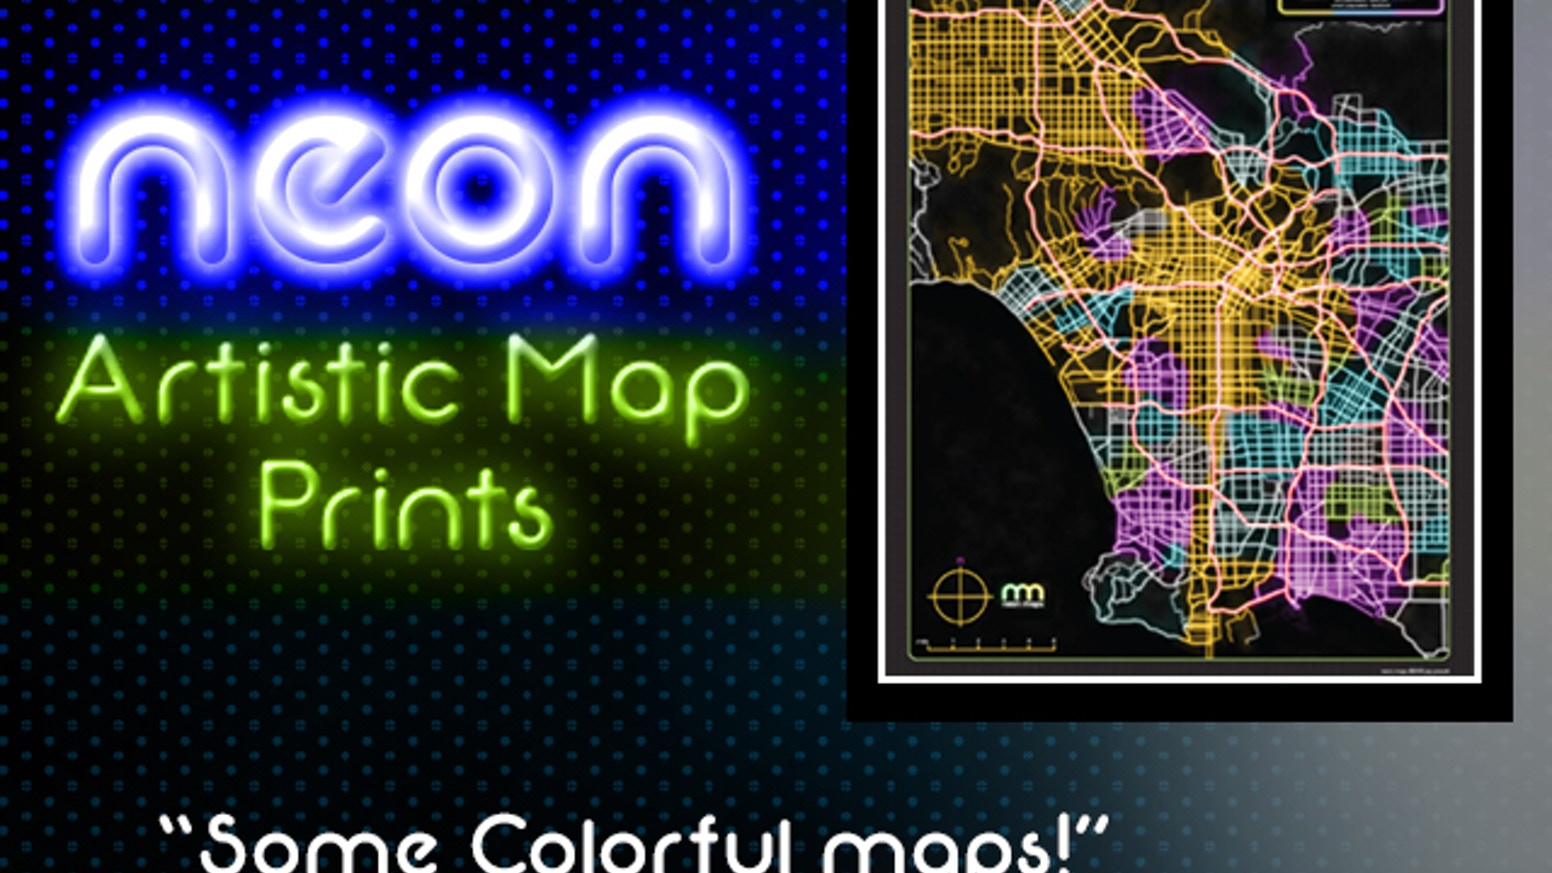 Inspired by maps and Neon lights. These artistic city map prints of different cities will add color to any wall. Suitable for framing. Neonmaps.com